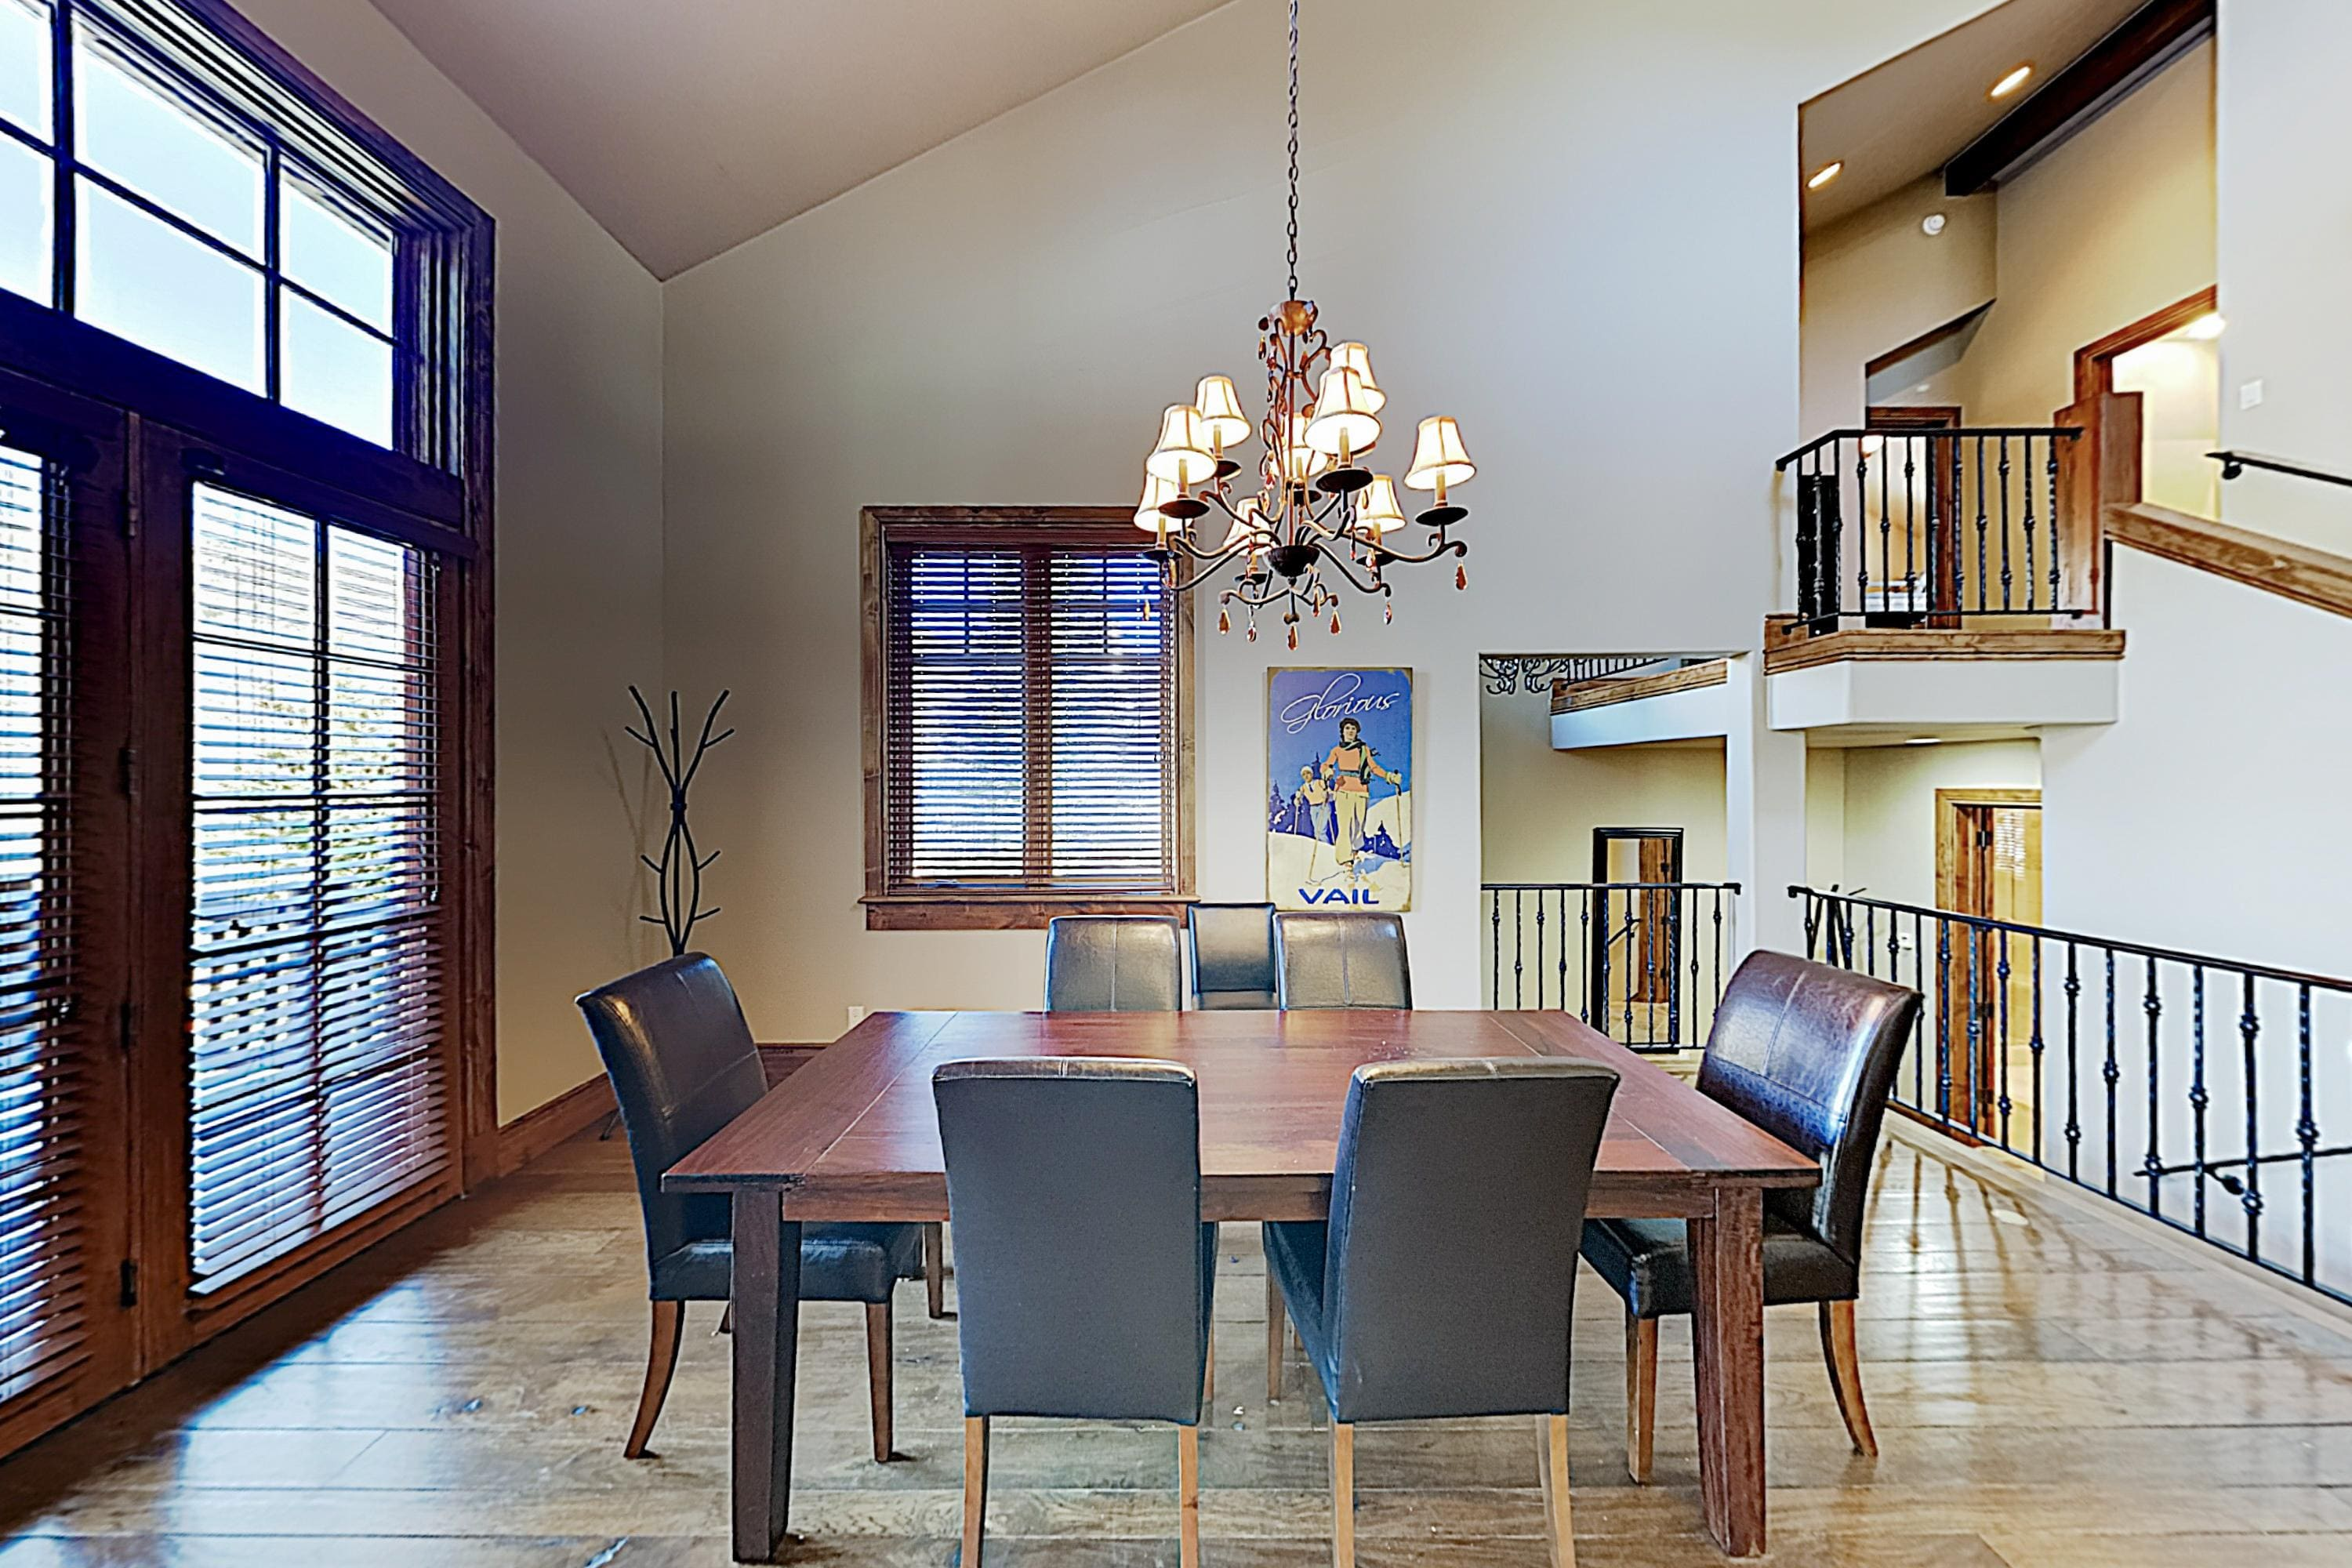 Gather around the table for 6 in the dining area for home-cooked meals.